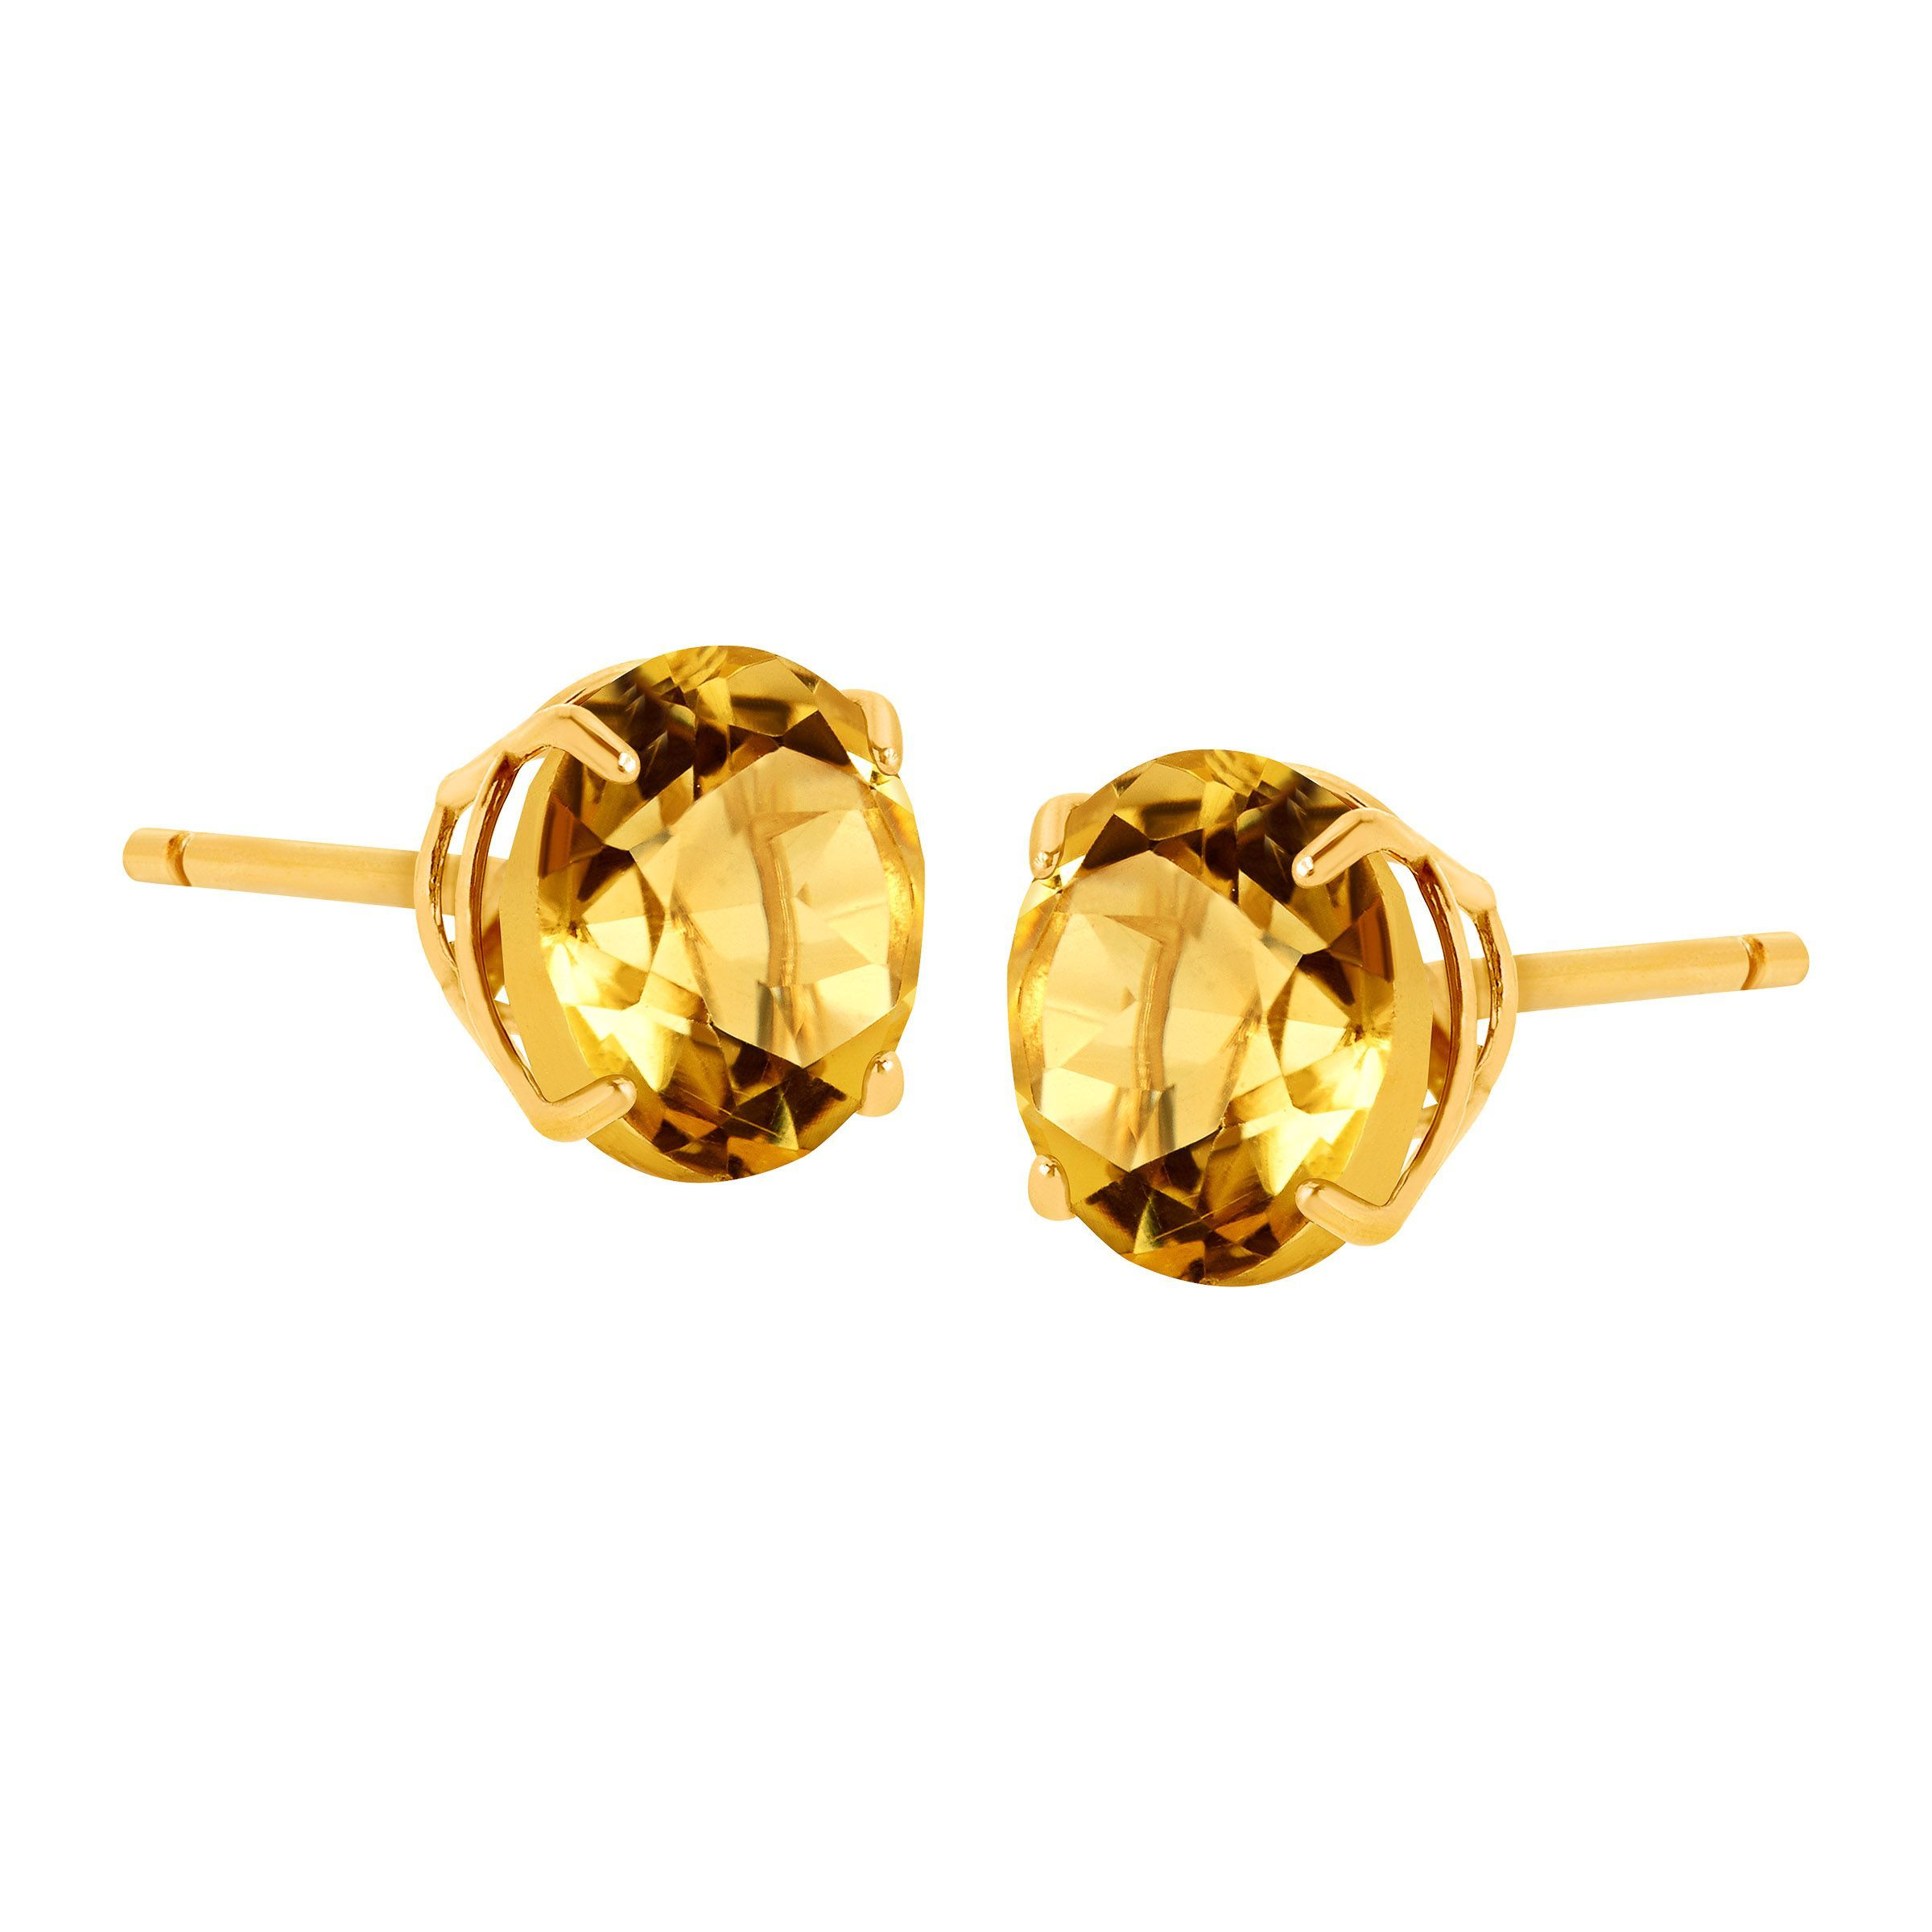 Details About 1 3 8 Ct Natural Citrine Round Cut Stud Earrings In 10k Gold